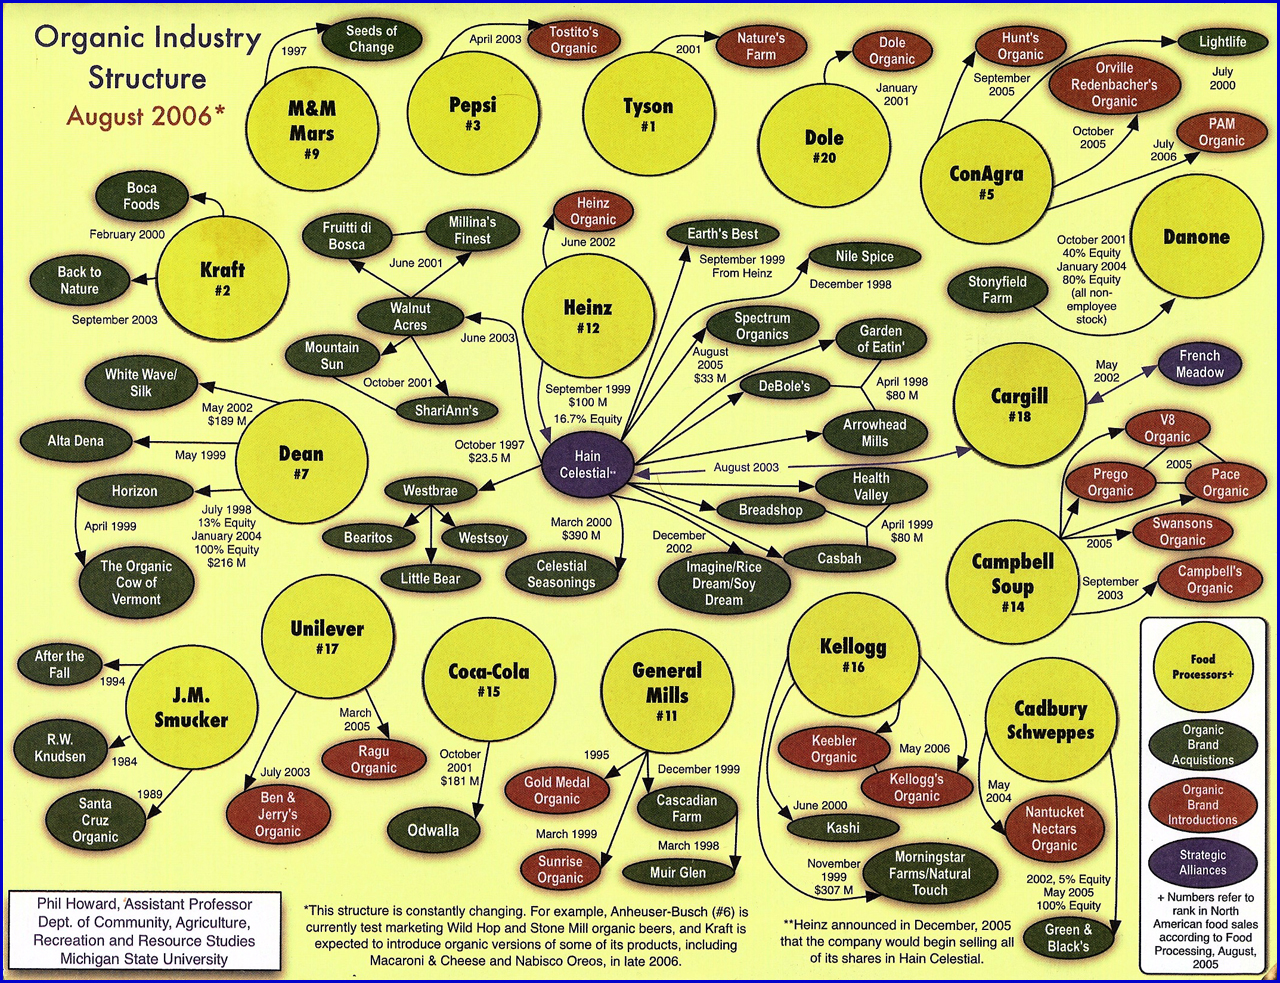 Organic Industry Structure Aug 2006.jpg